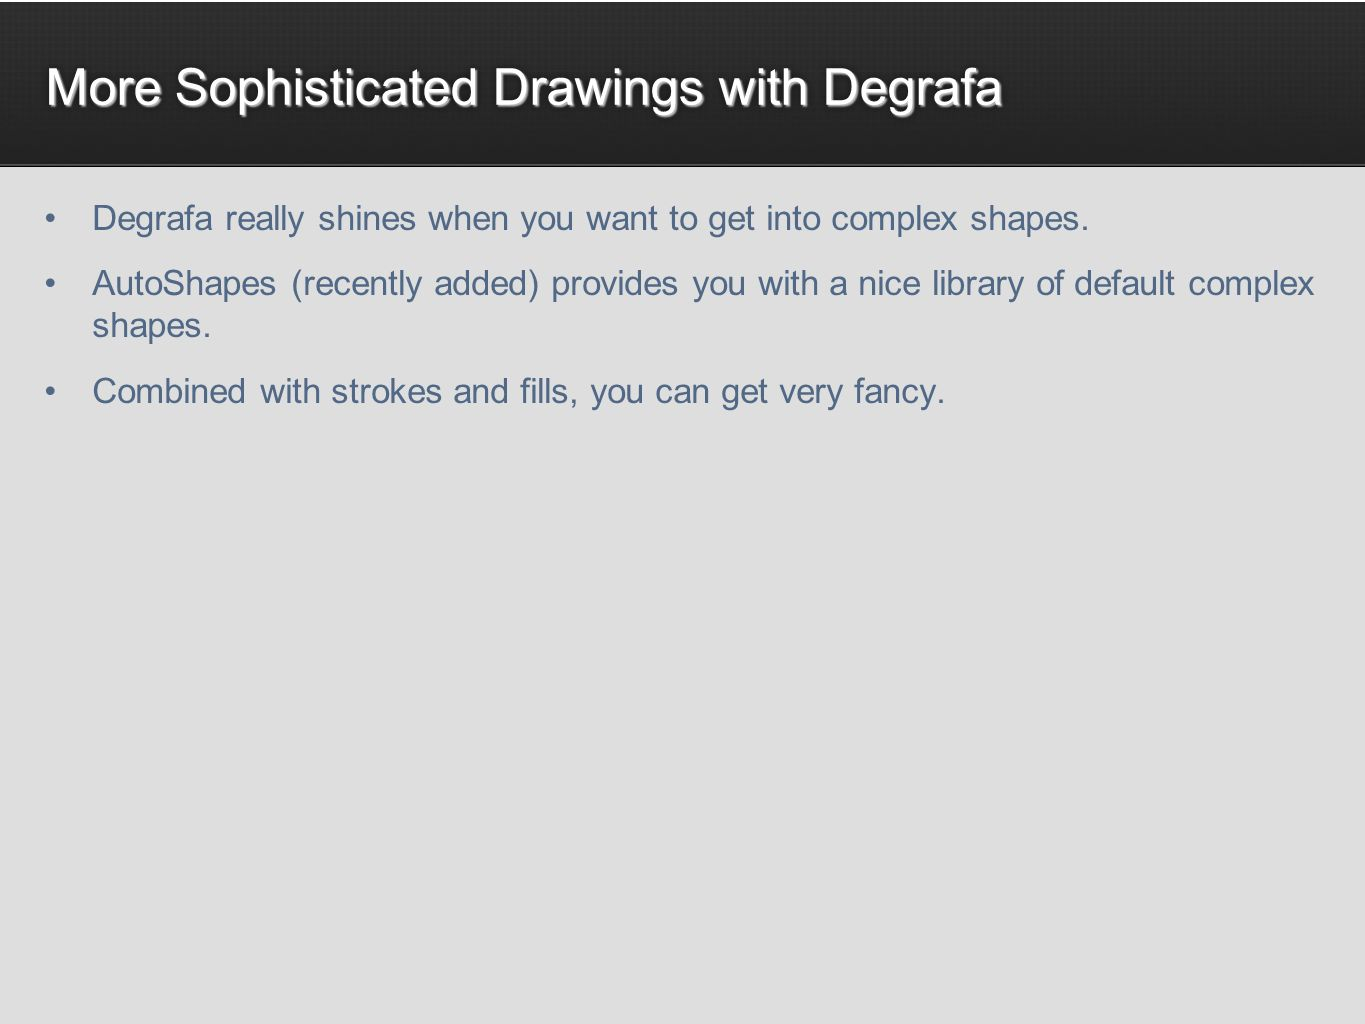 More Sophisticated Drawings with Degrafa Degrafa really shines when you want to get into complex shapes. AutoShapes (recently added) provides you with